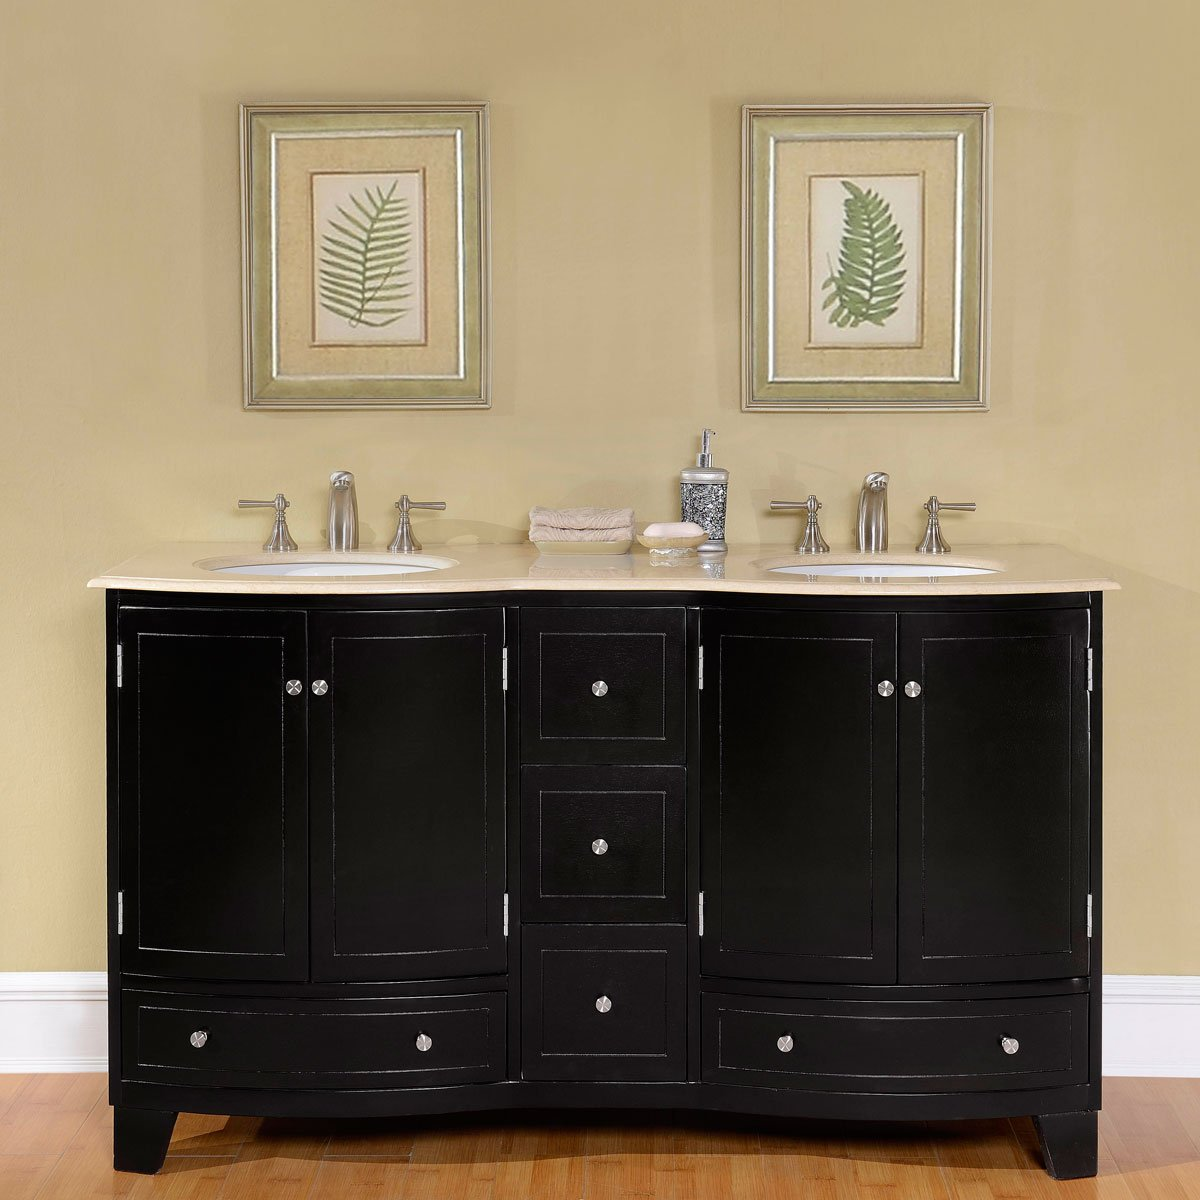 Silkroad Exclusive Marble Top Double White Sink Bathroom Vanity with Espresso Cabinet, 60-Inch by Silkroad Exclusive